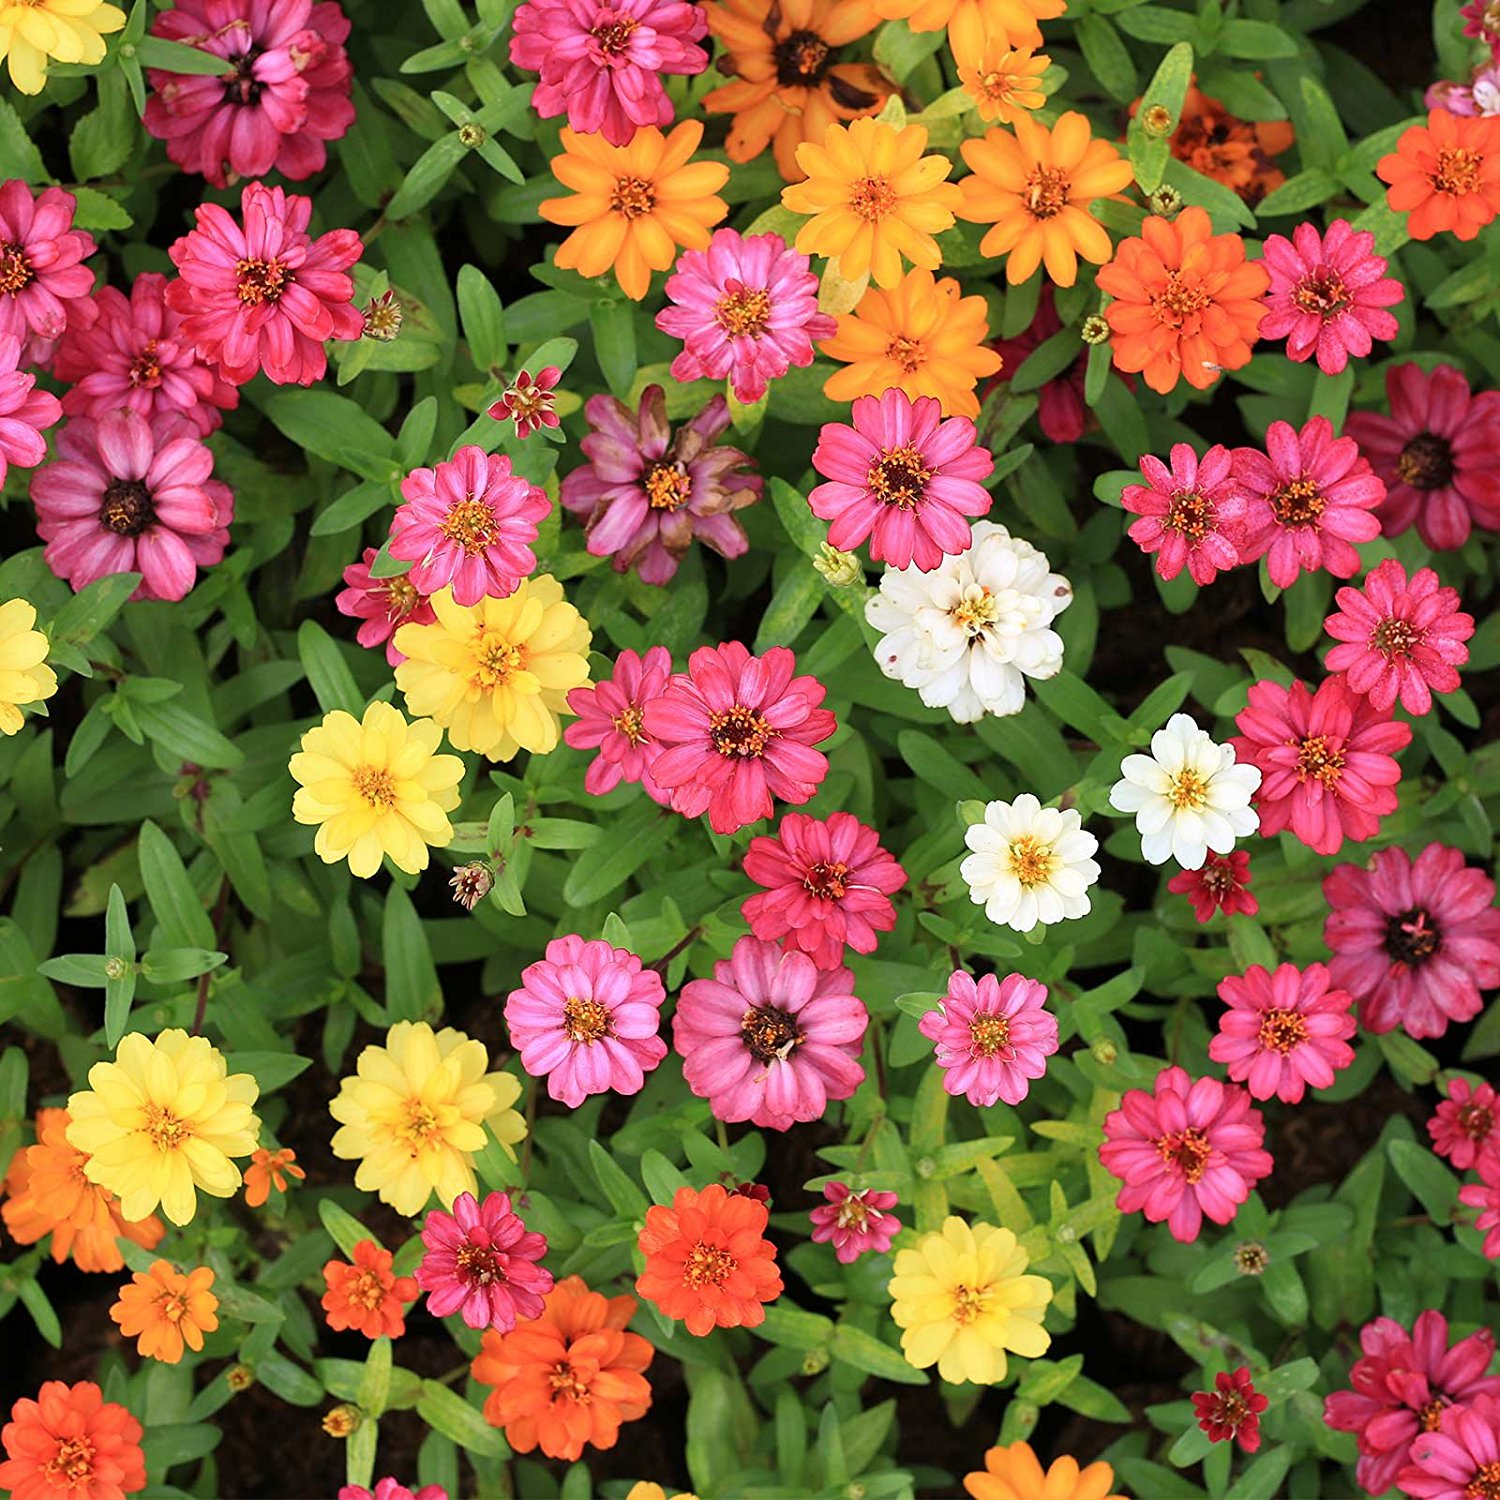 Zinnia Flower Garden Seeds   Profusion Series   Seven Color Mix   500 Seeds    Annual